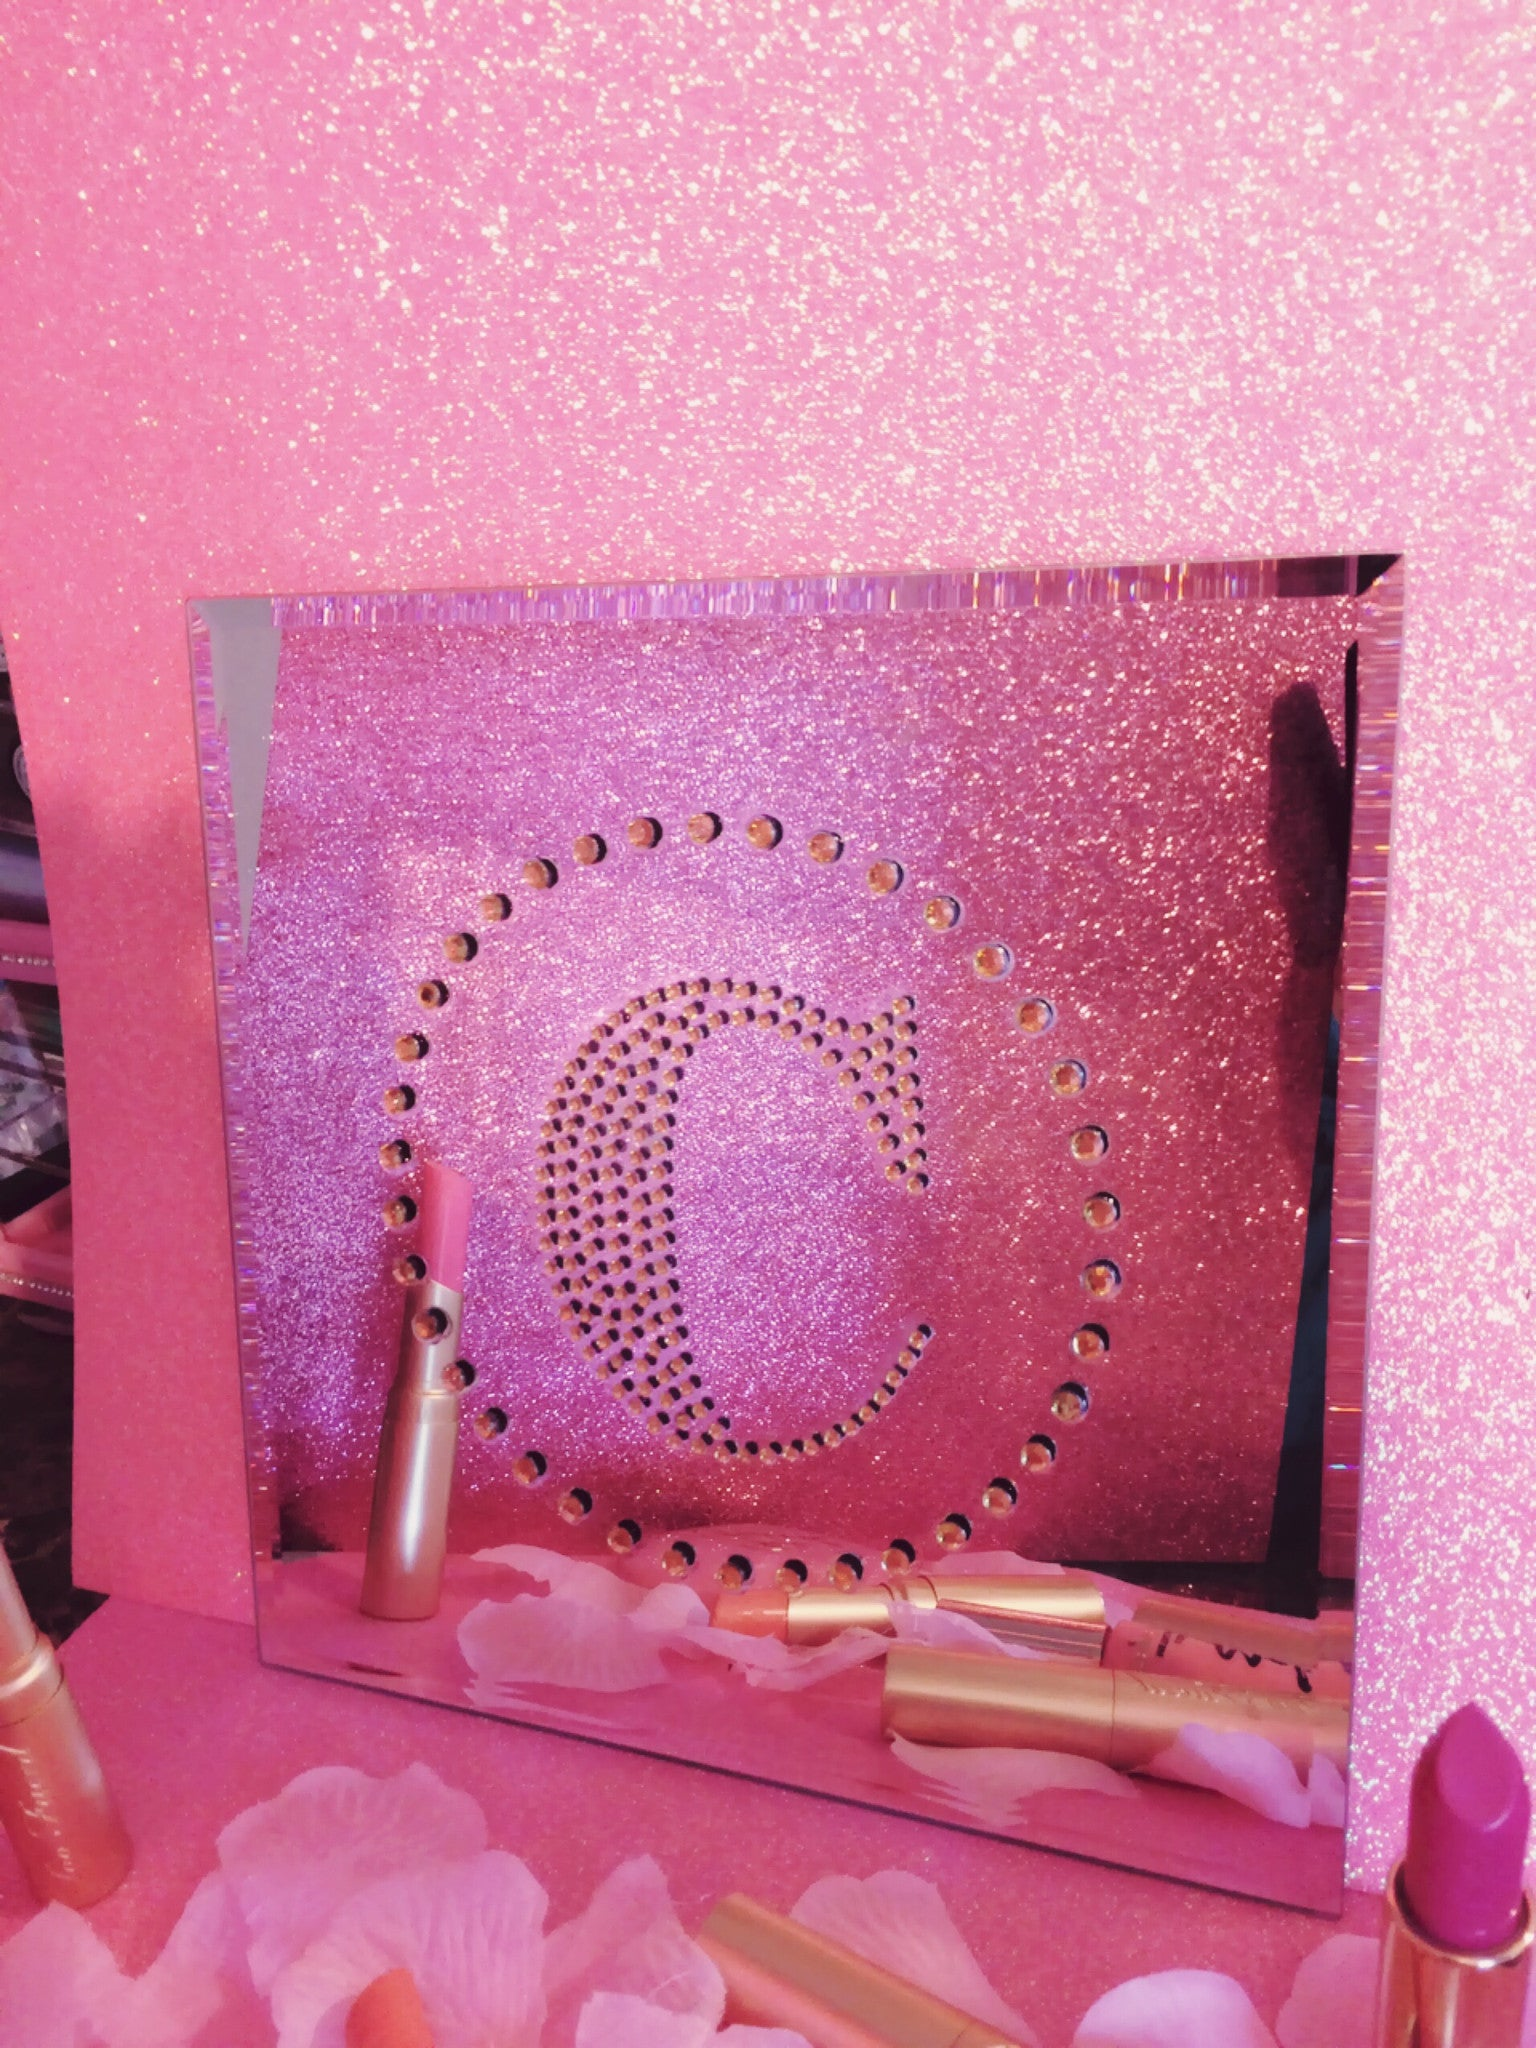 Letter C with rhinestones on a decor mirror - Classy Pink Boutique